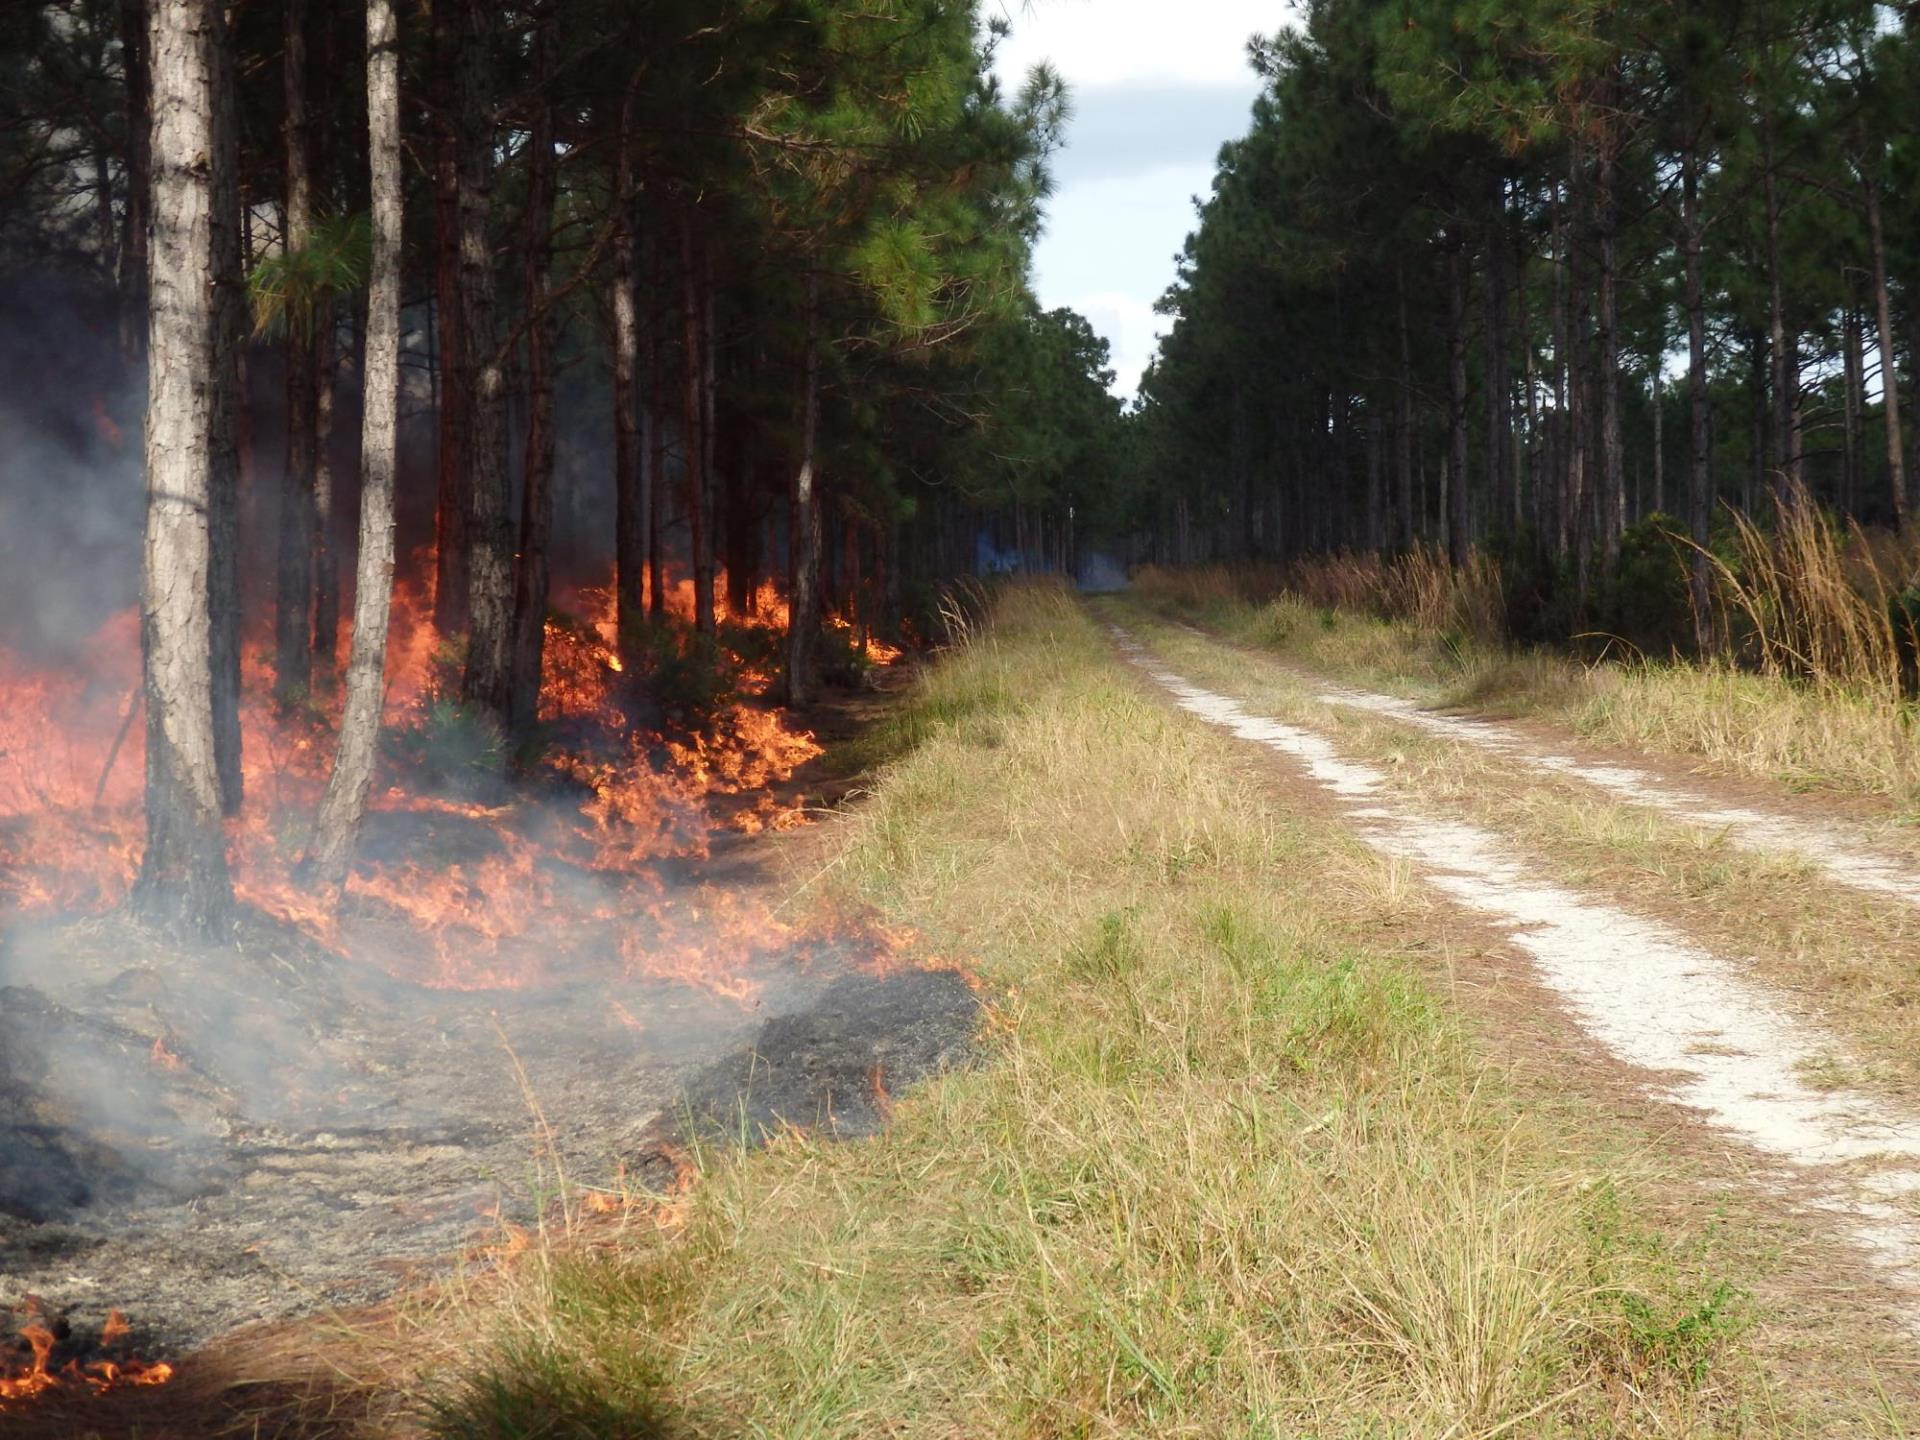 Control burn along a rural road